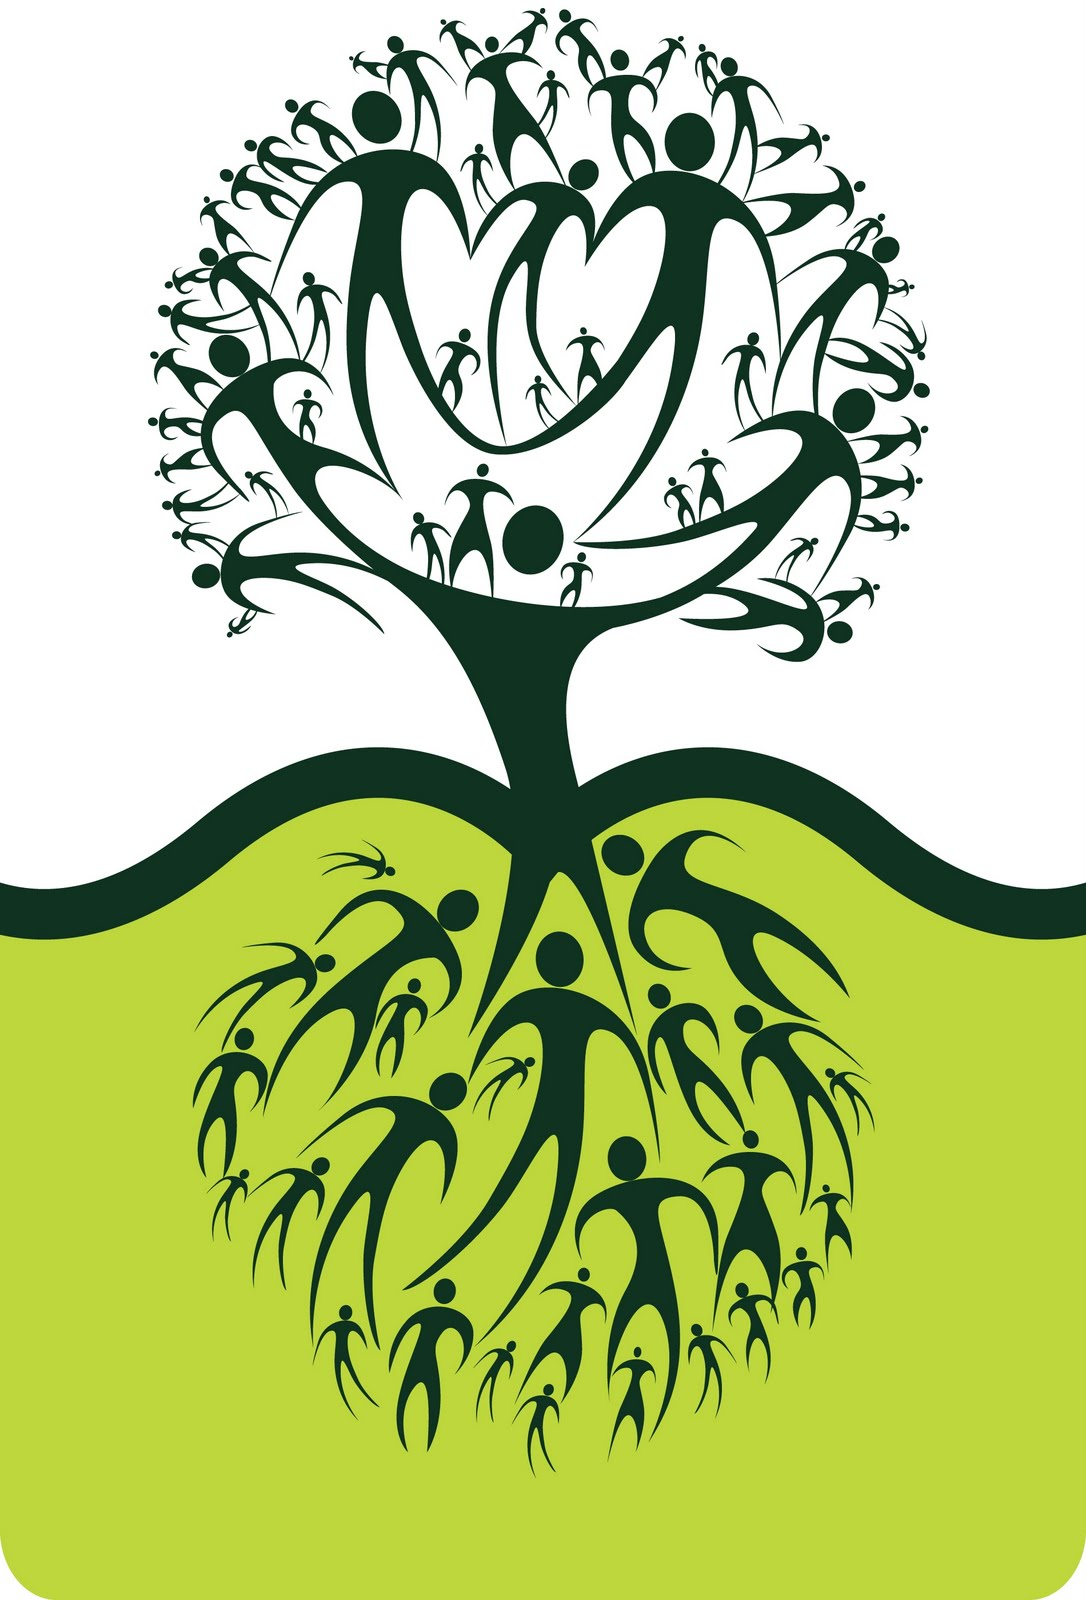 People by tree clipart.